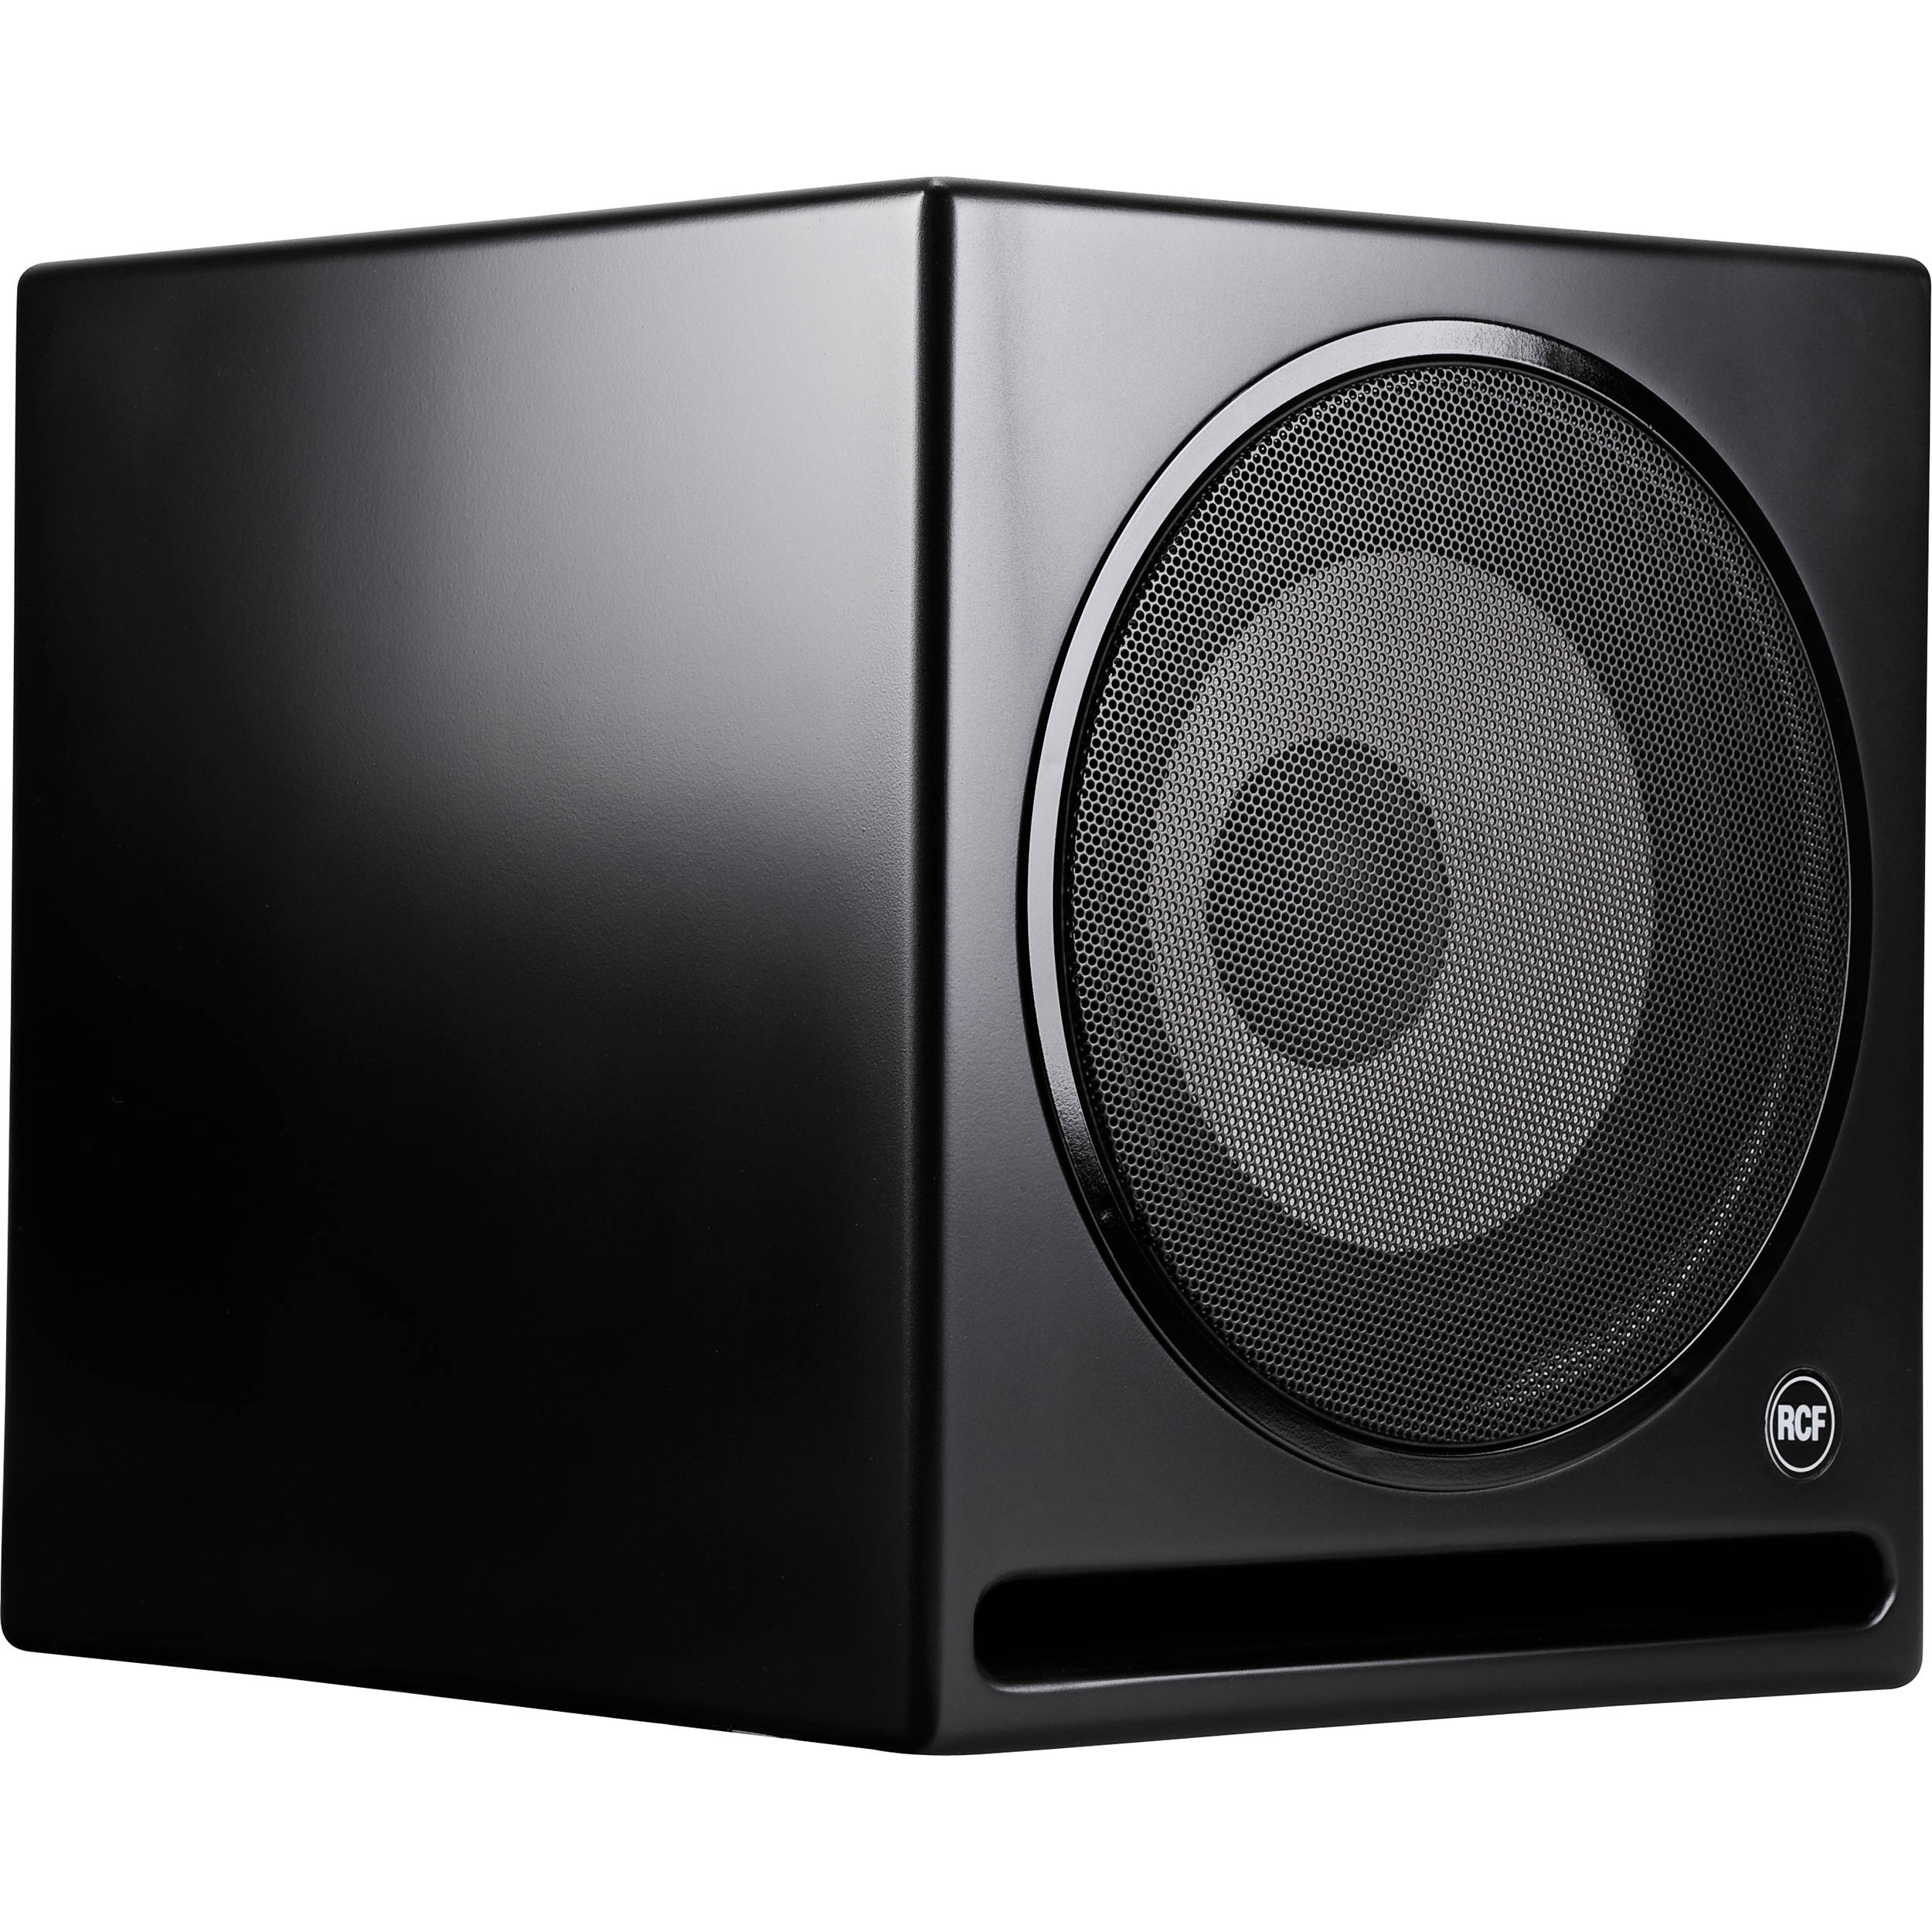 Subwoofer active: description